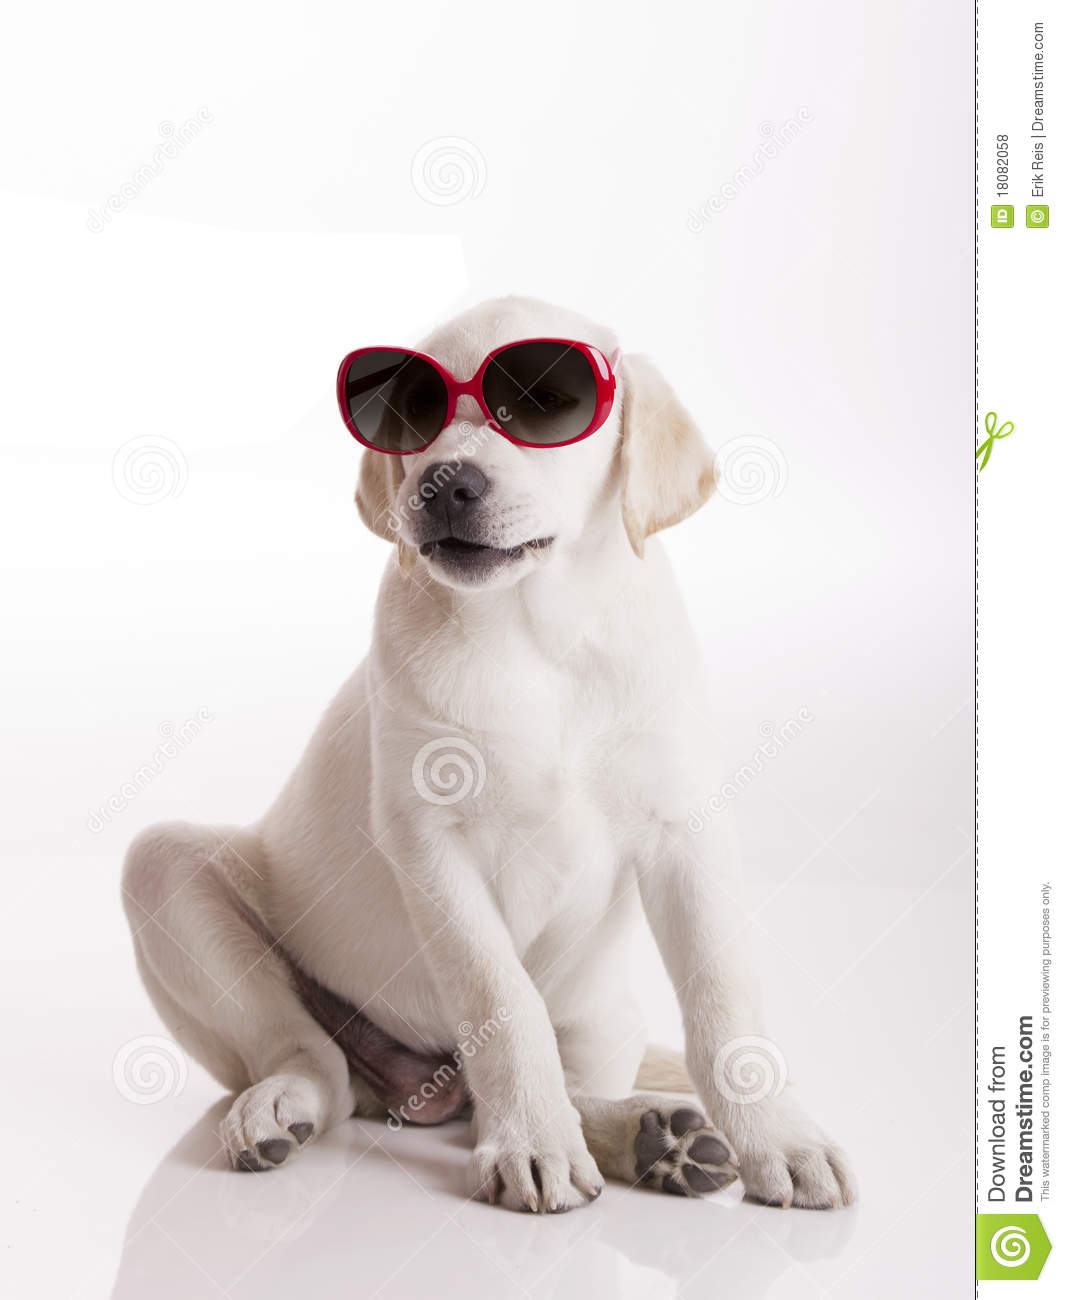 Puppy With Sunglasses Royalty Free Stock Photos - Image: 18082058